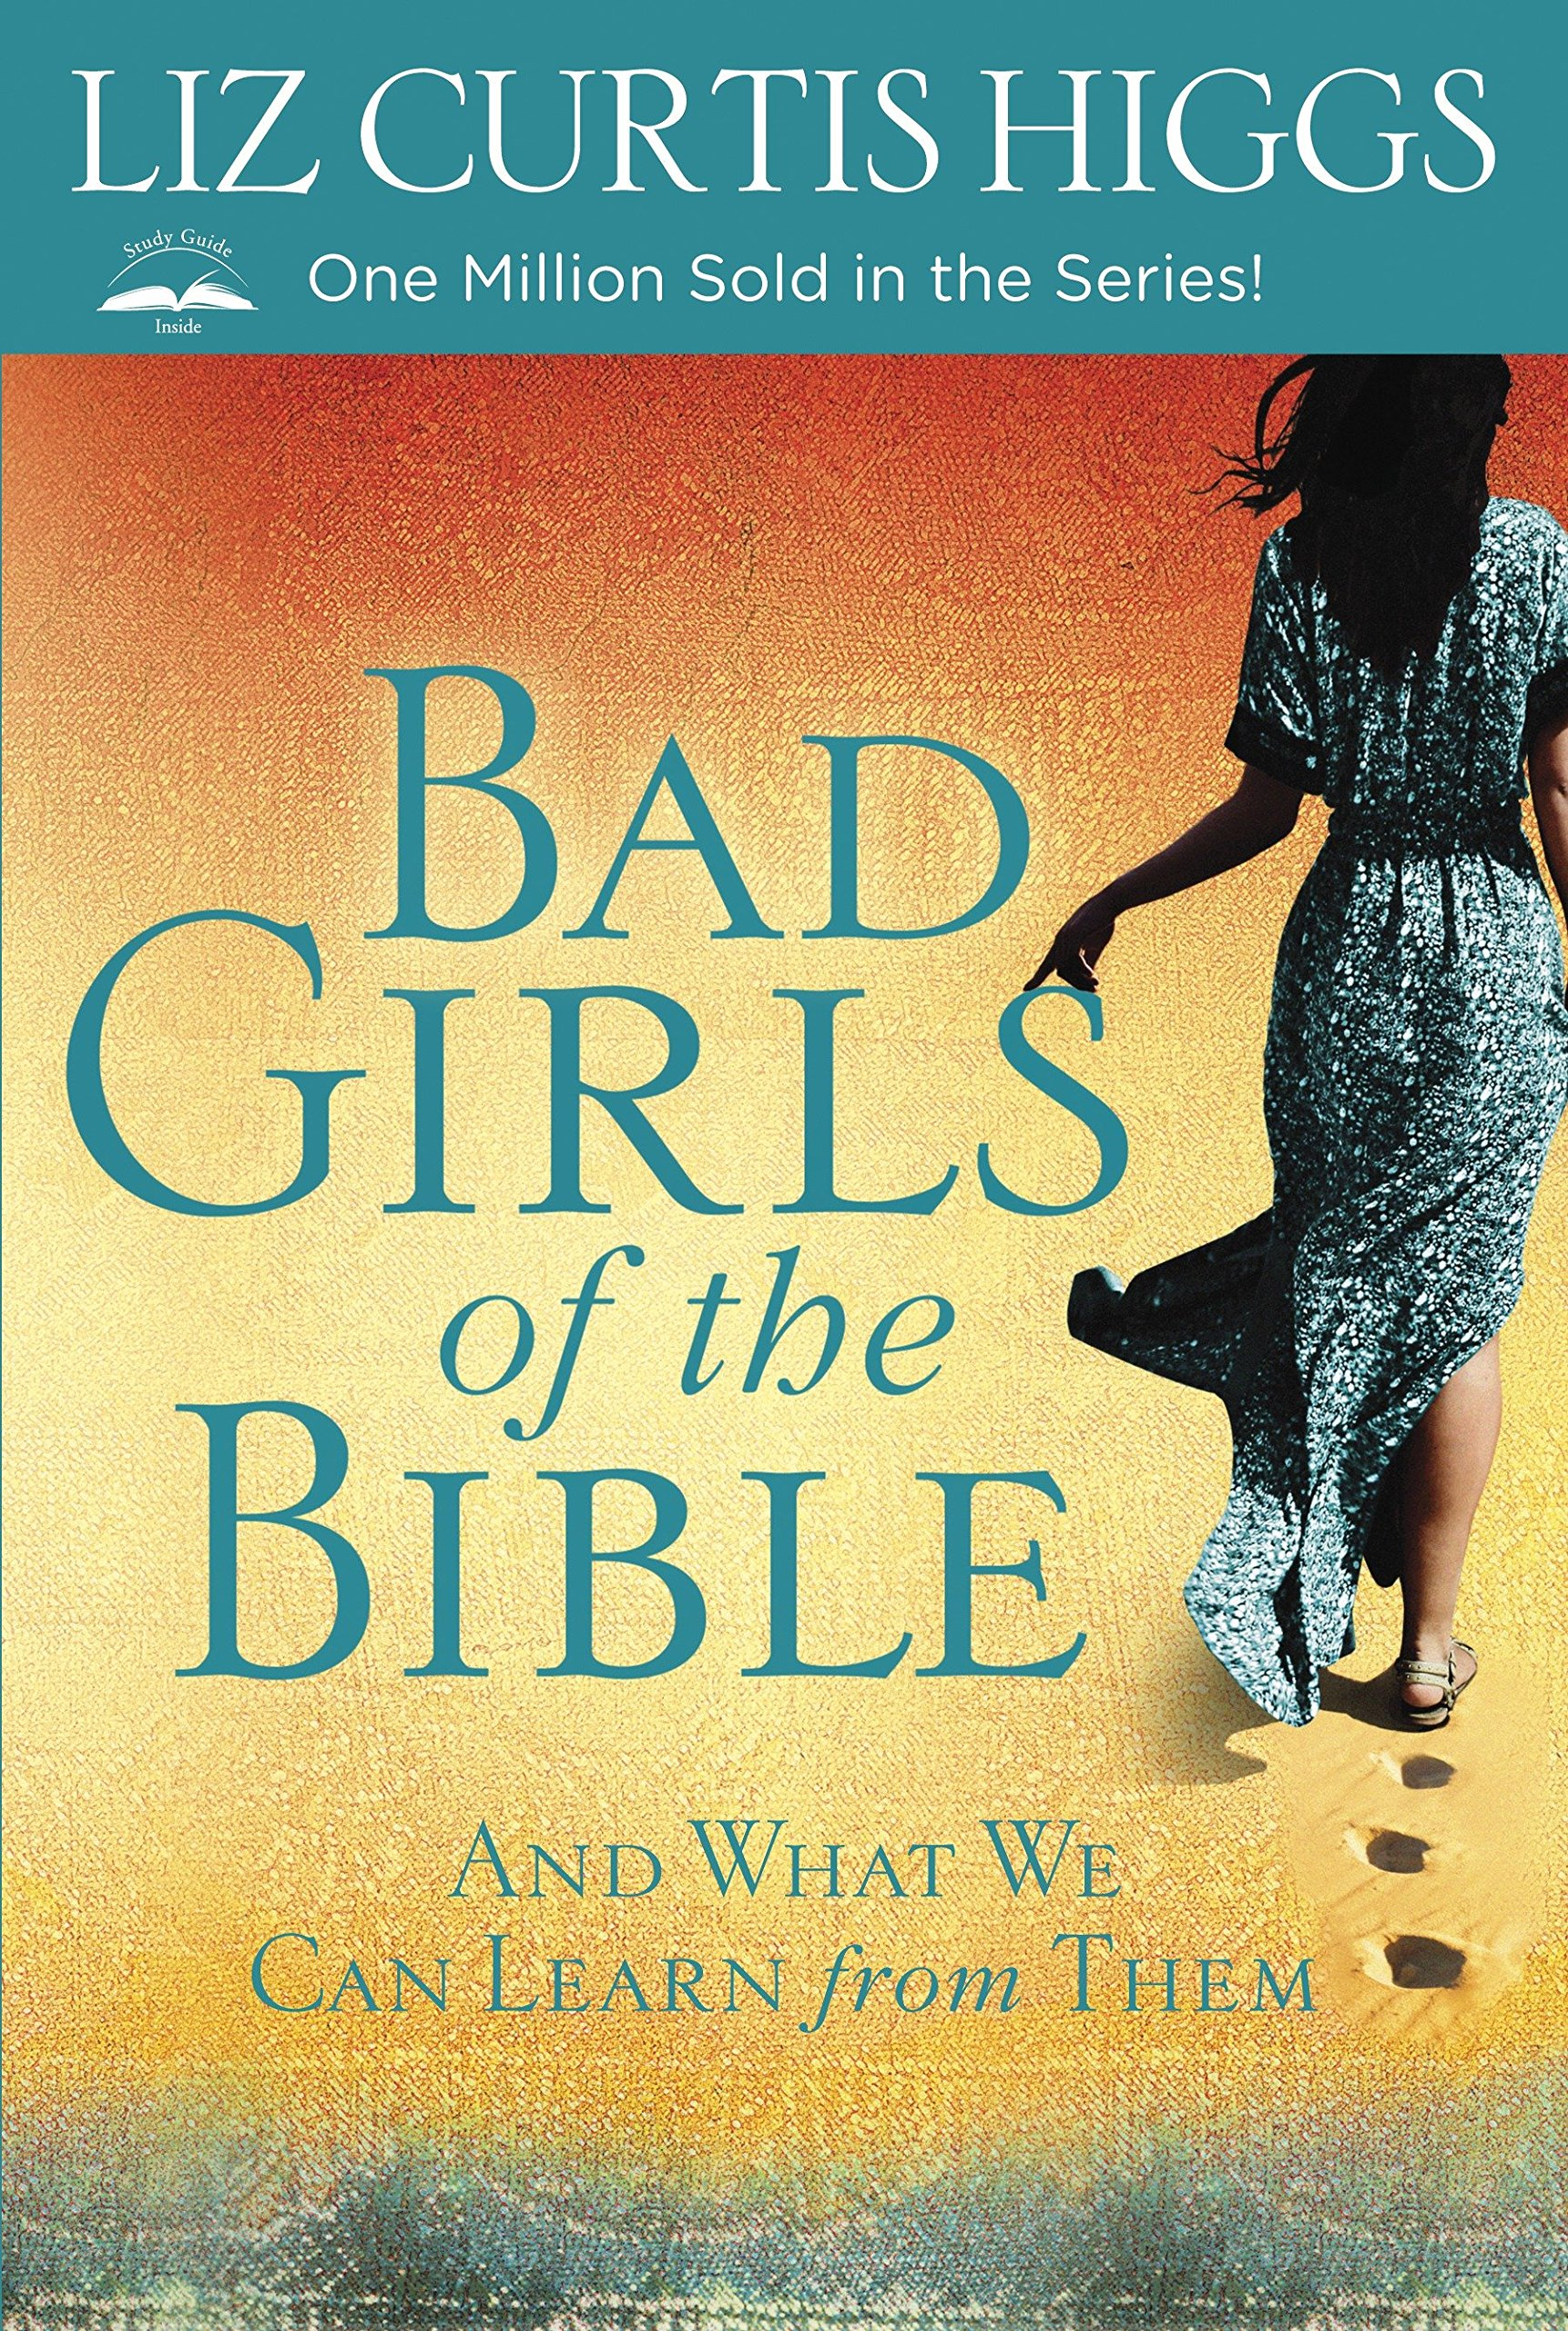 bad girls of the bible and what we can learn from them liz curtis